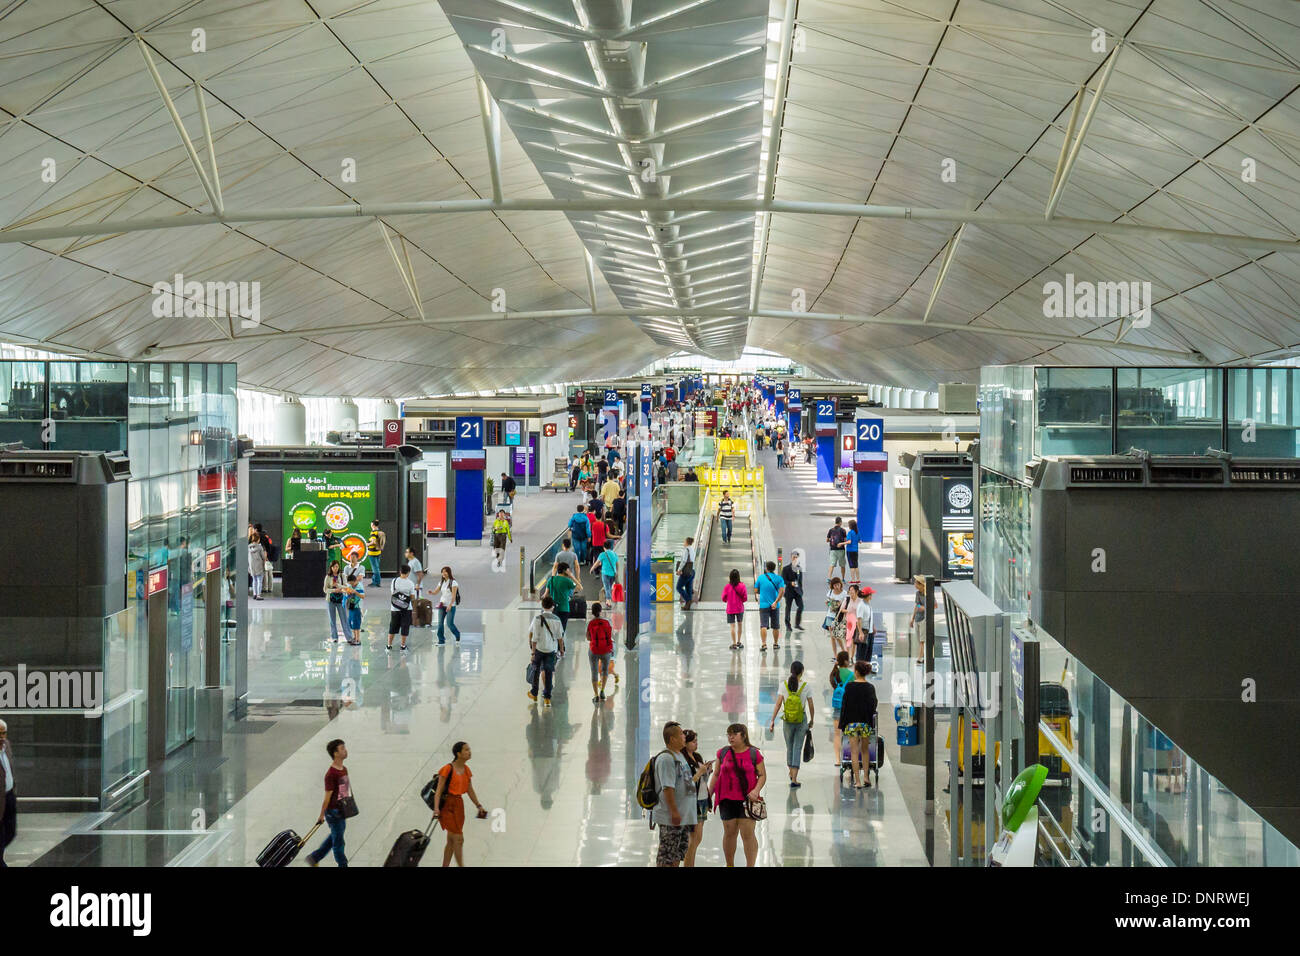 Interior of Terminal, Hong Kong International Airport, Hong Kong Stock Photo